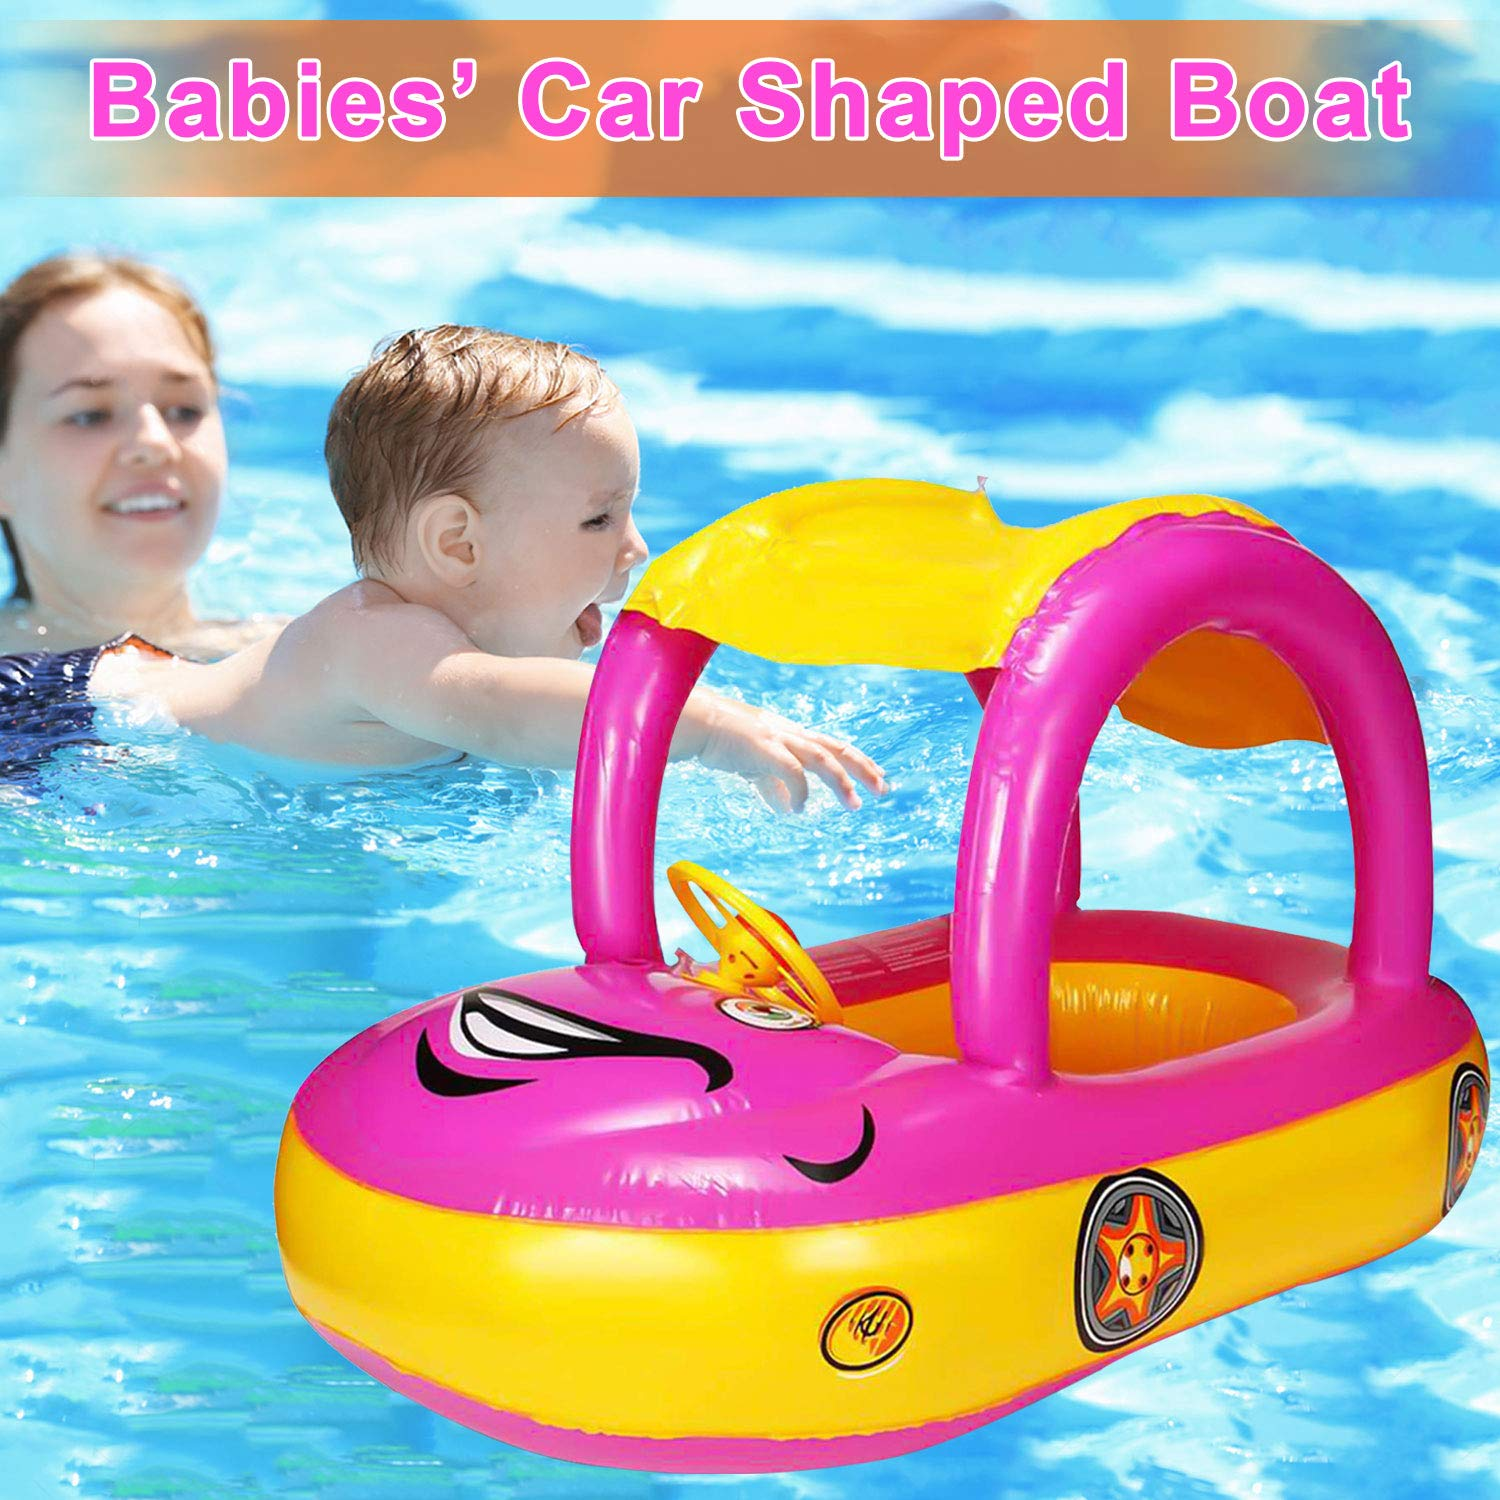 Fit 3-36 Months, Maximum 44lb Baby Swim Float with Canopy Car Shaped Inflatable Swimming Ring Boat with Sunshade for Boys Girls Toddler Infant Float for Pool Floating Cute Boat Summer Outdoor Play